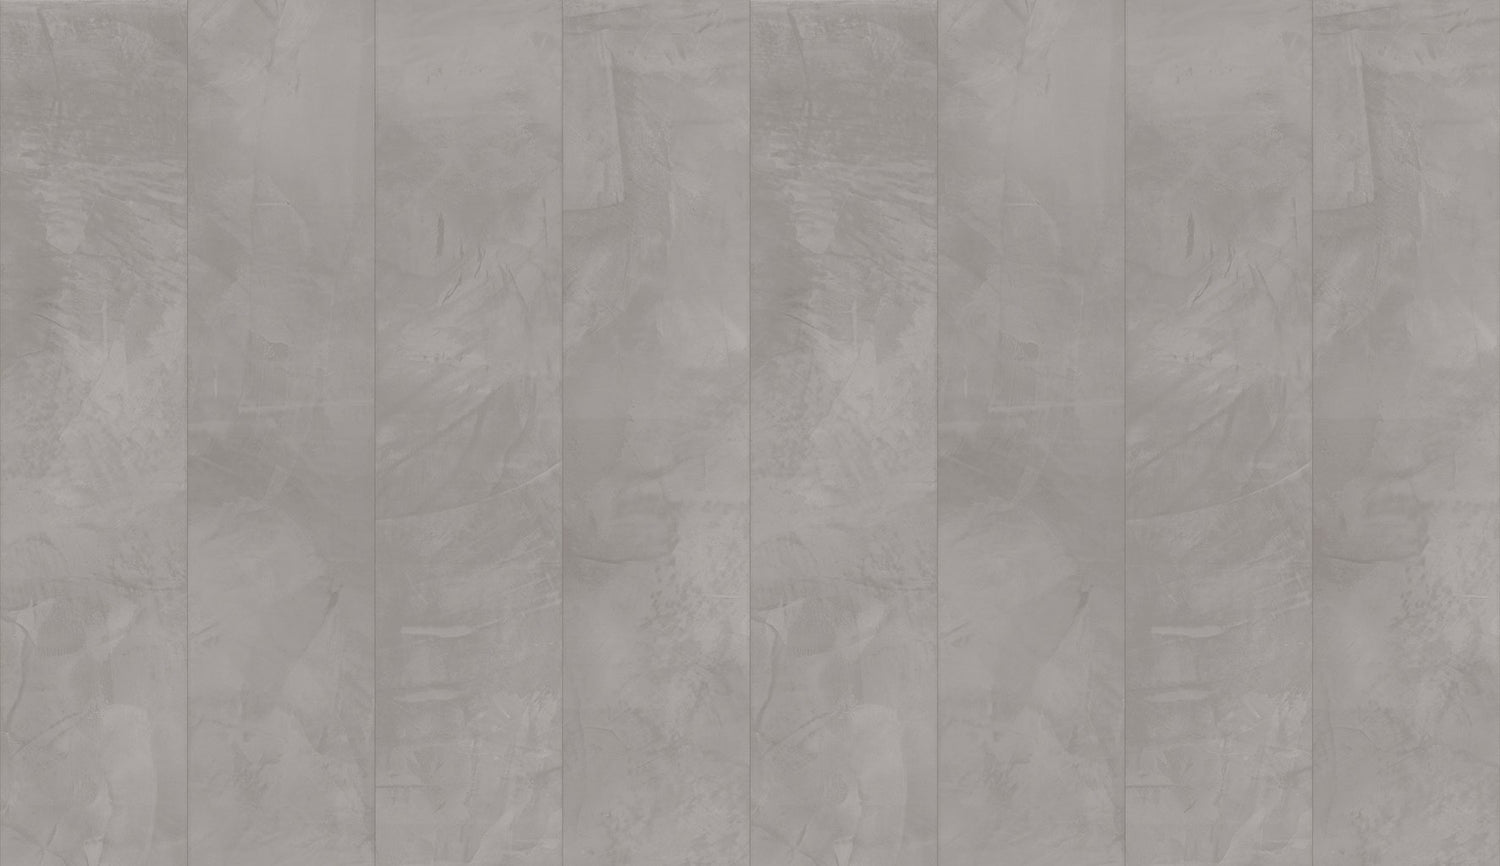 Wallpaper - Polished Concrete Dark by Piet Boon